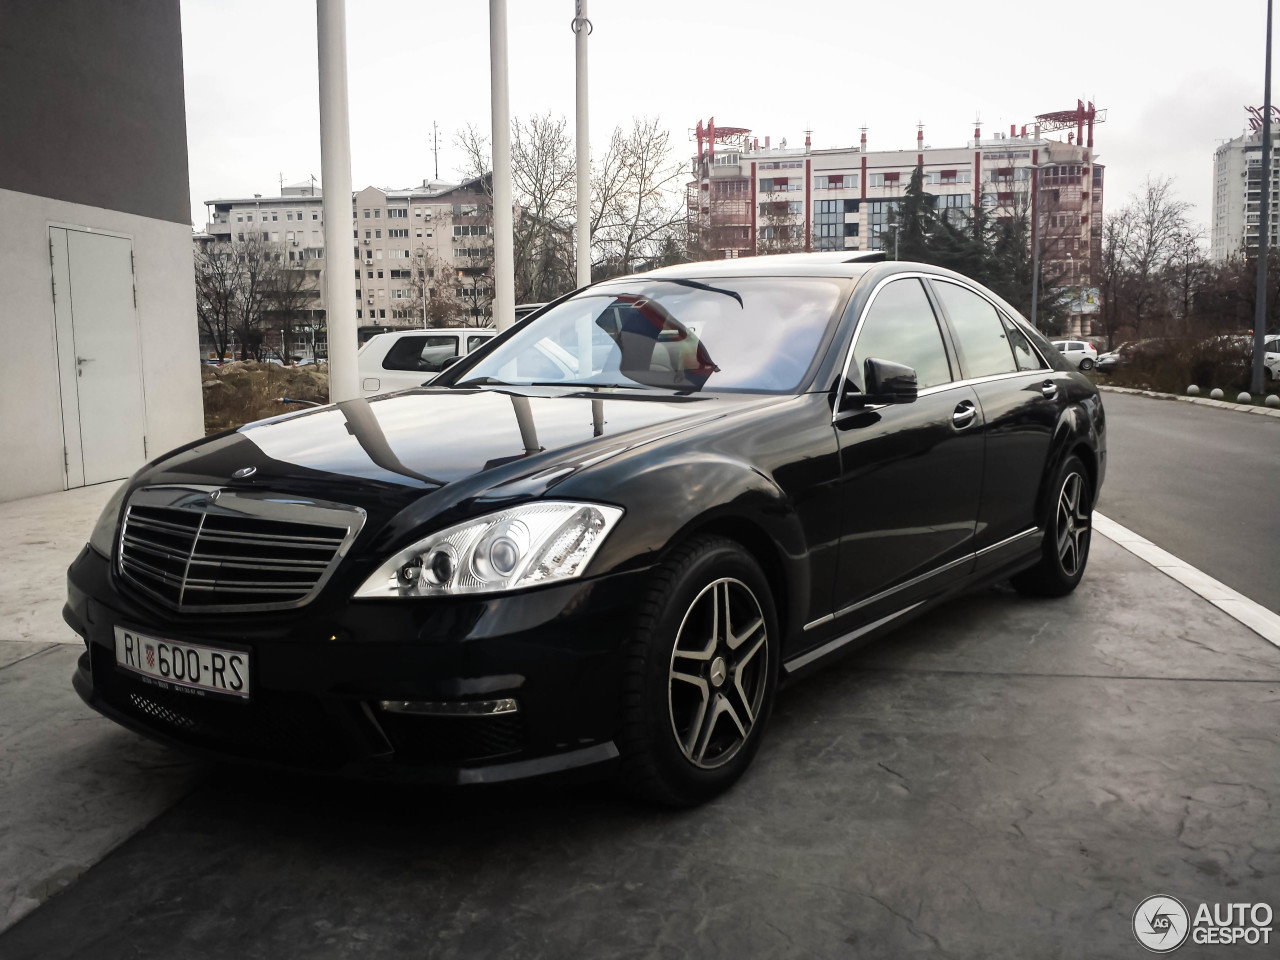 Mercedes benz s 63 amg w221 2010 25 january 2014 for Mercedes benz s63 amg 2010